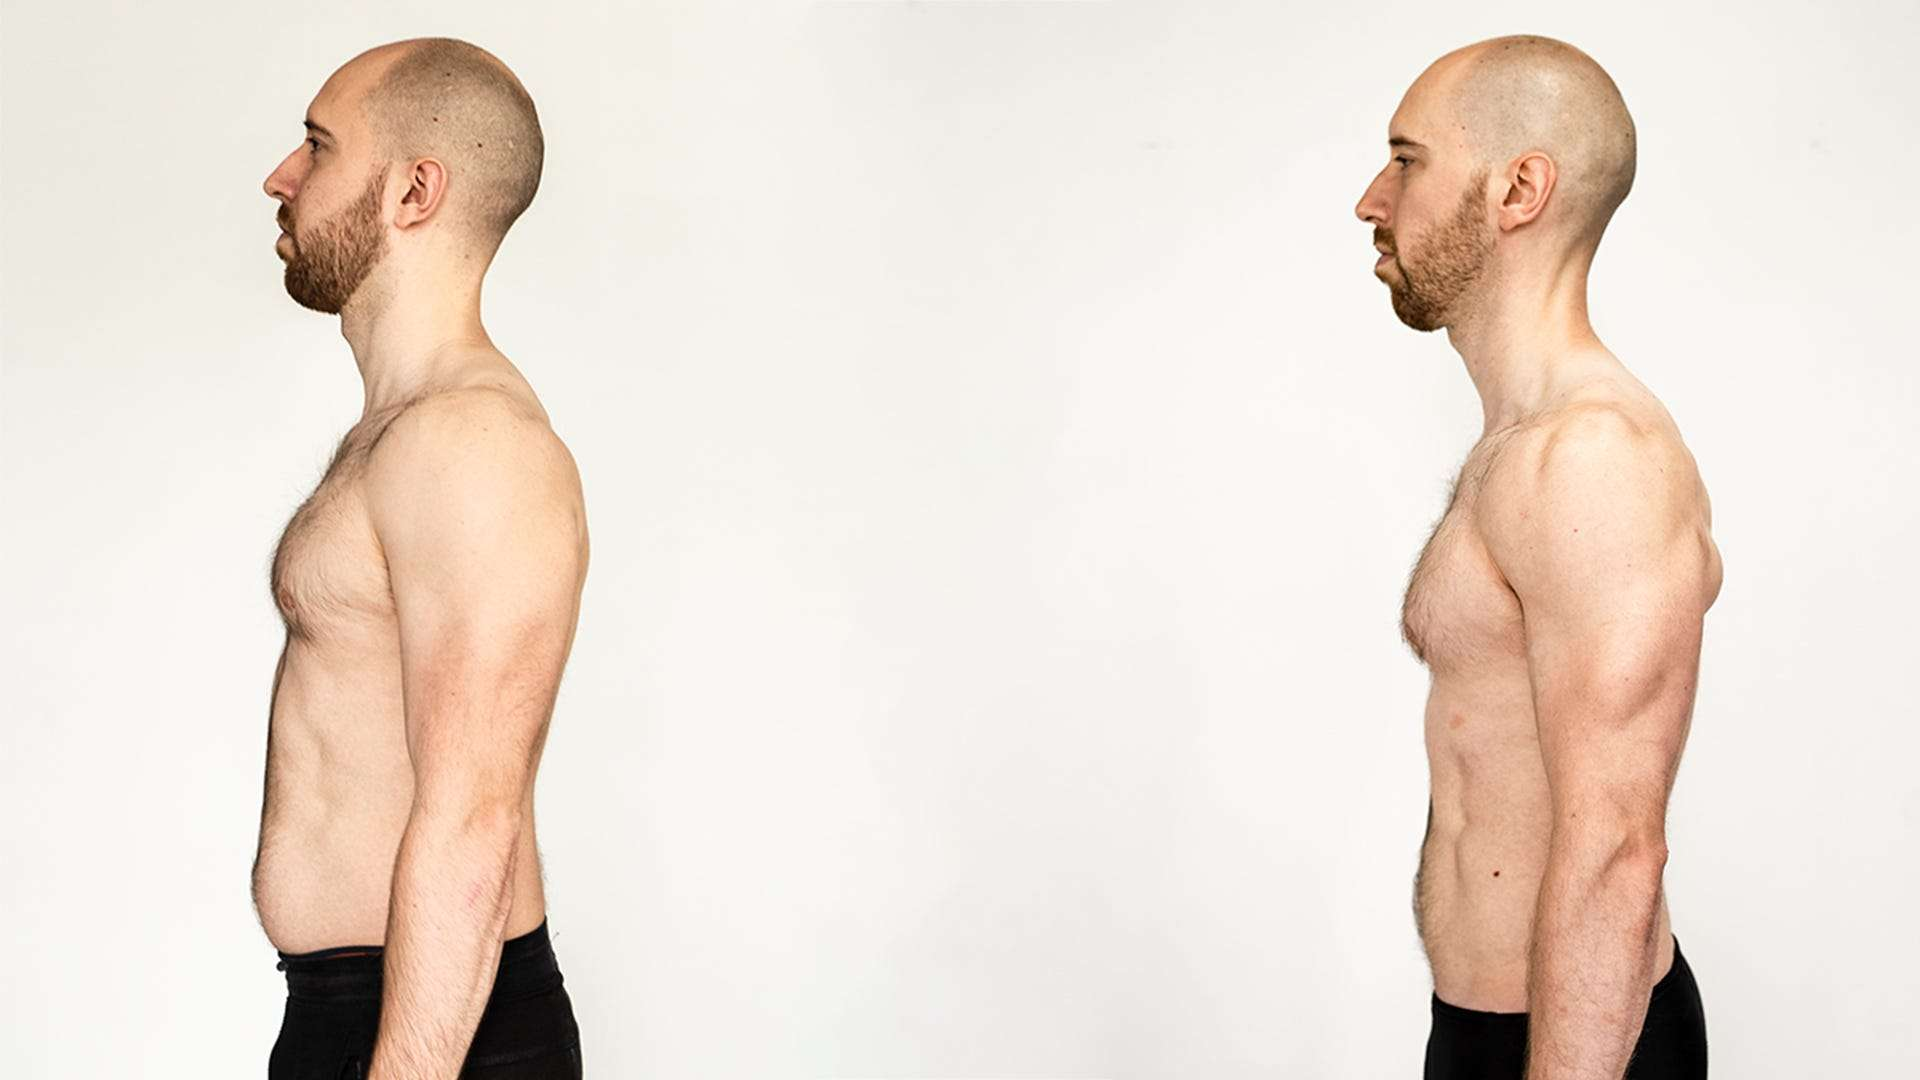 A YouTuber says he lost 10 pounds of fat and gained 2 pounds of muscle without a gym - just by using at-home strength training and calorie control